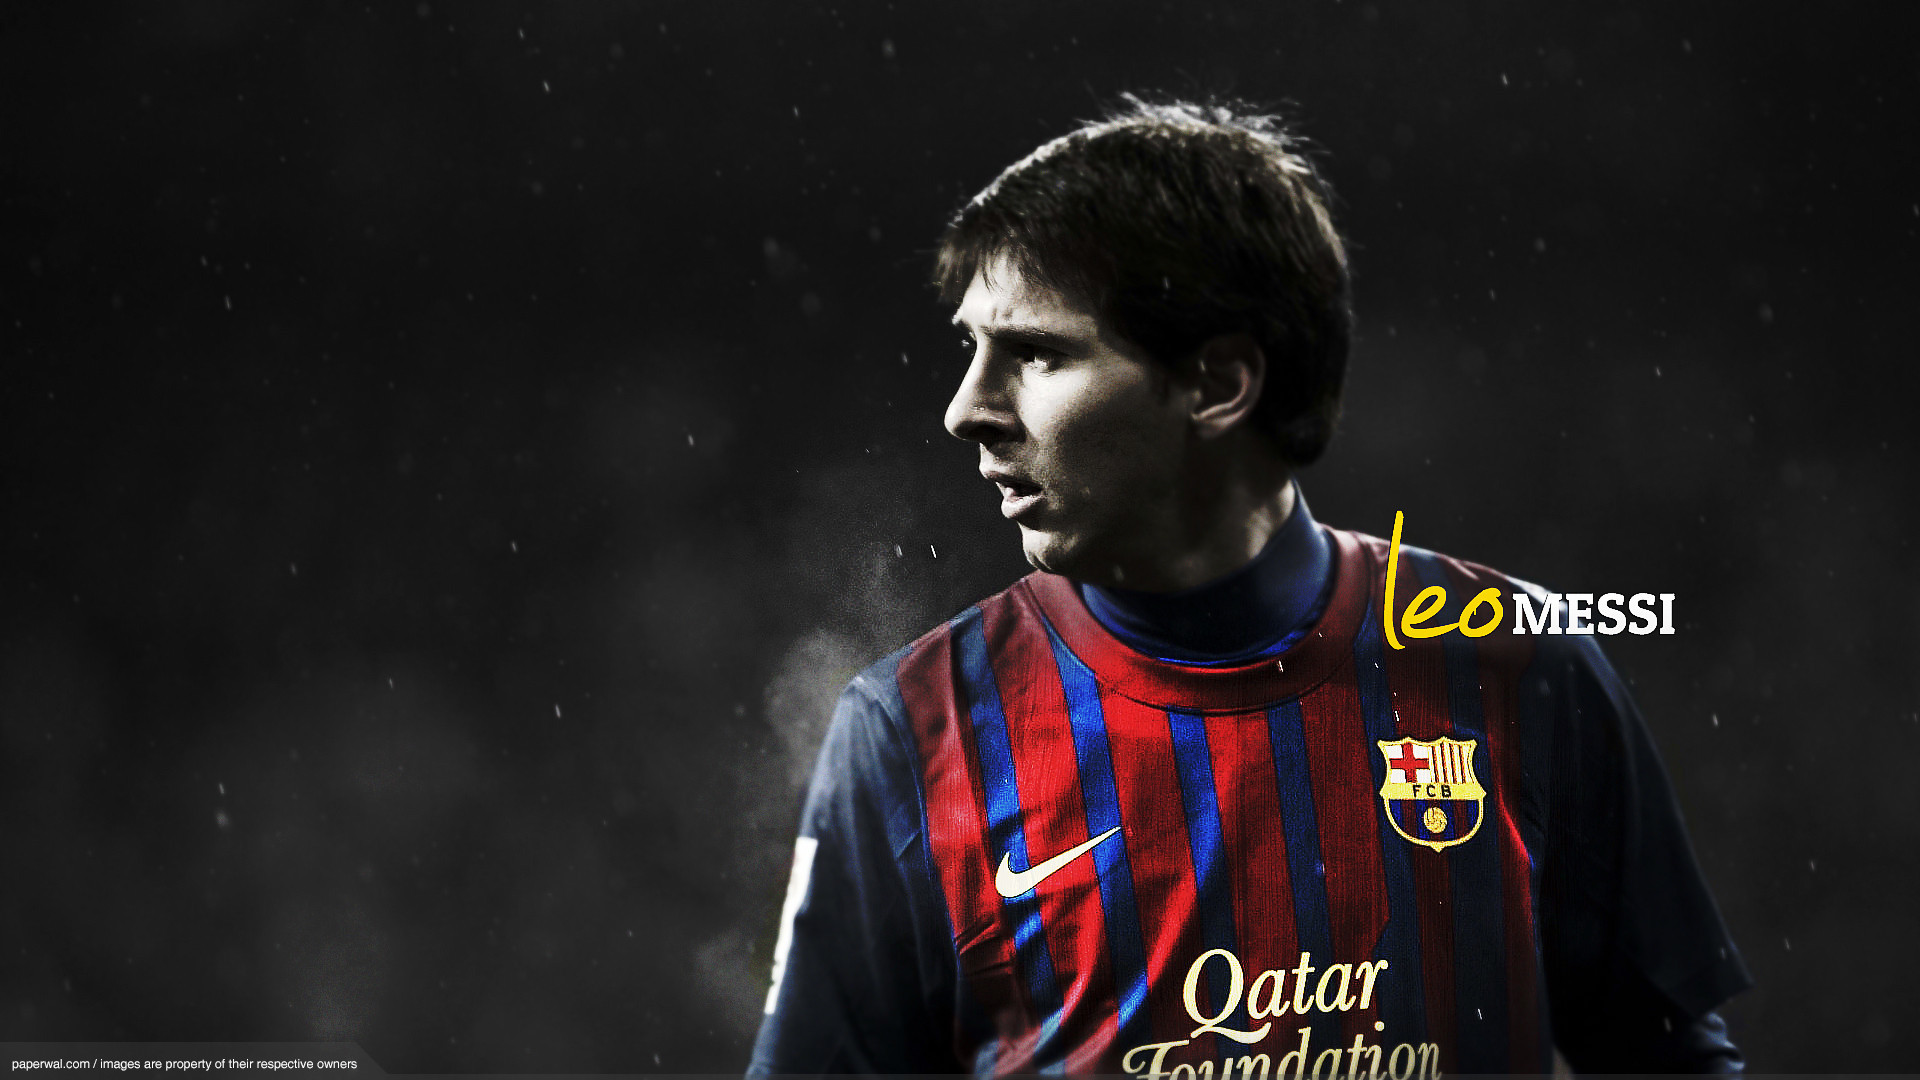 1920x1080 Messi Wallpaper, Lionel Messi Photos, Soccer, Camp Nou, Best Talent,  Jersey, Messi Hd Images, , 1920×1080 Wallpaper HD